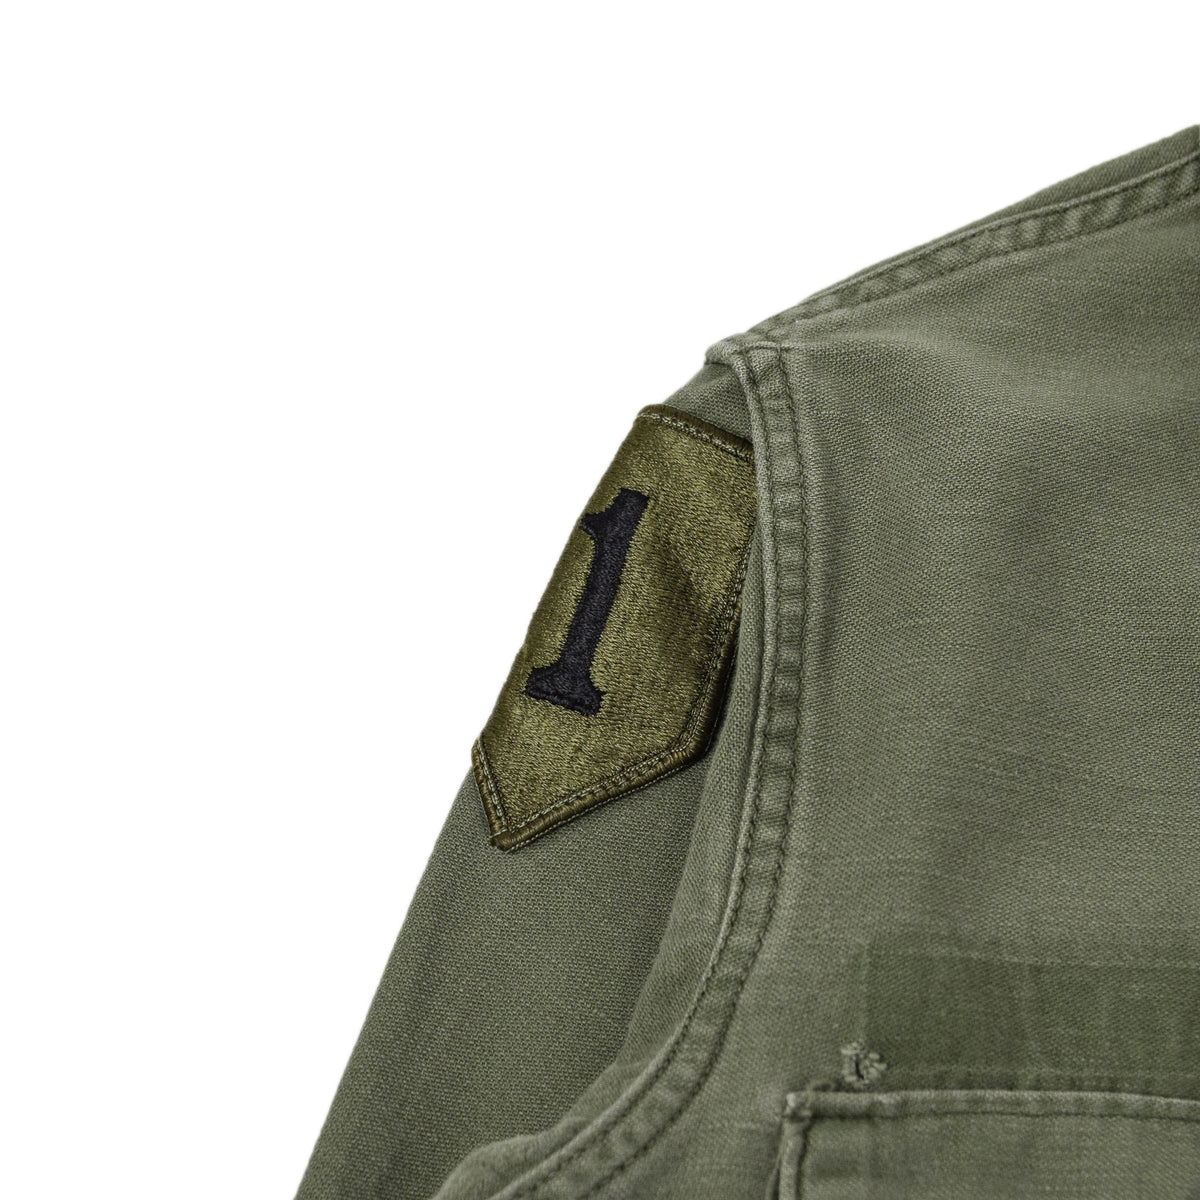 Vintage 70s Vietnam US Army Cotton Sateen Military Shirt OG-107 Olive Green XS arm badge